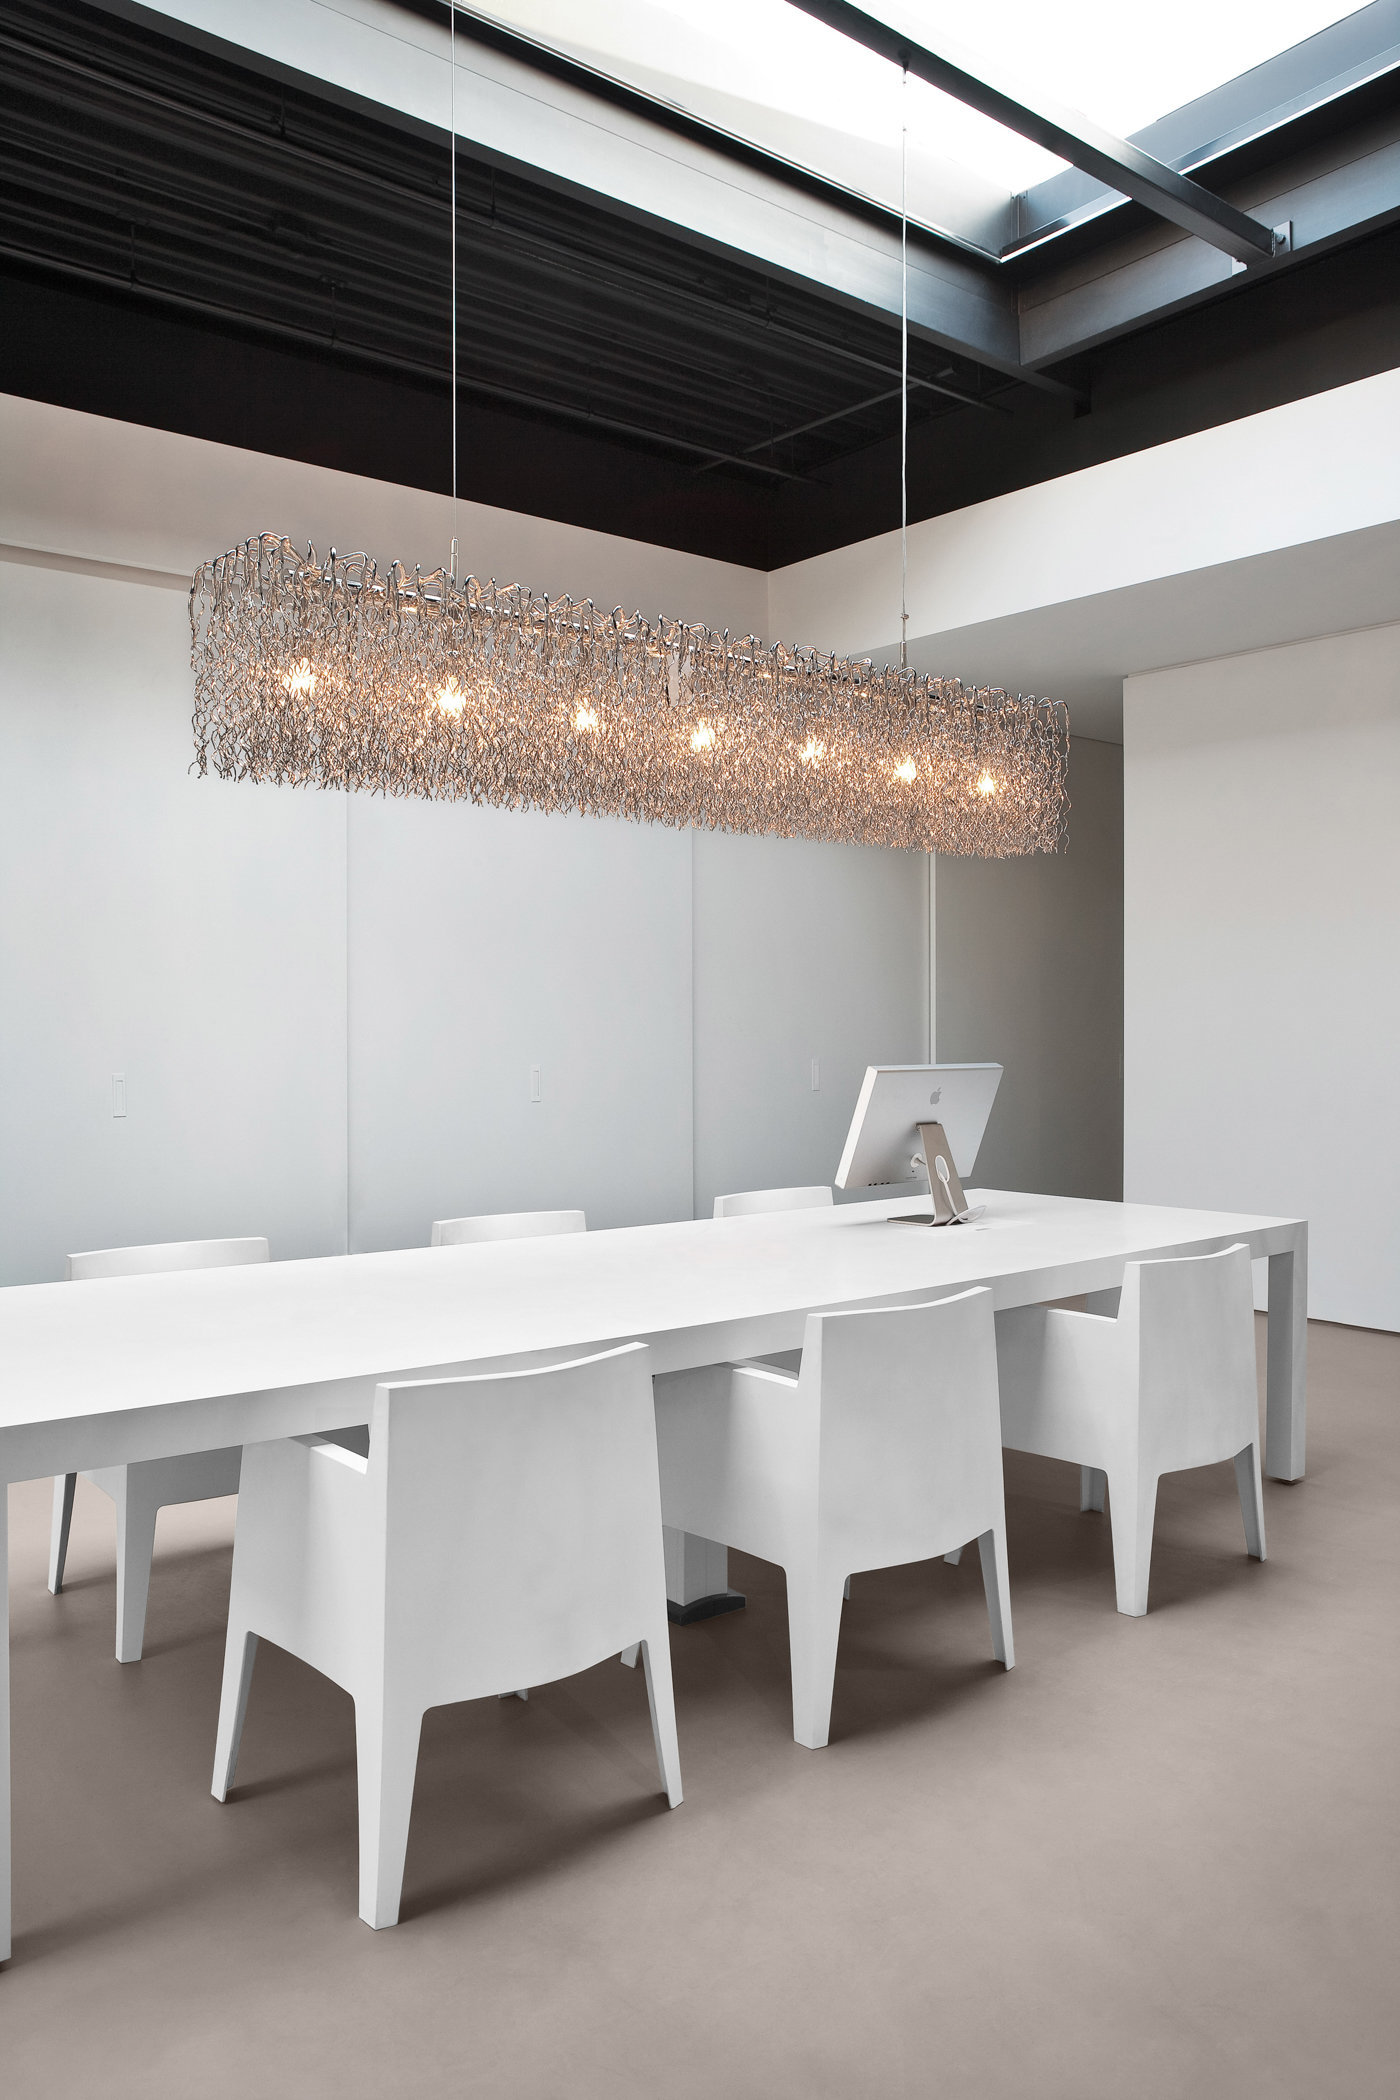 Lighting by Brand van Egmond, The Netherlands